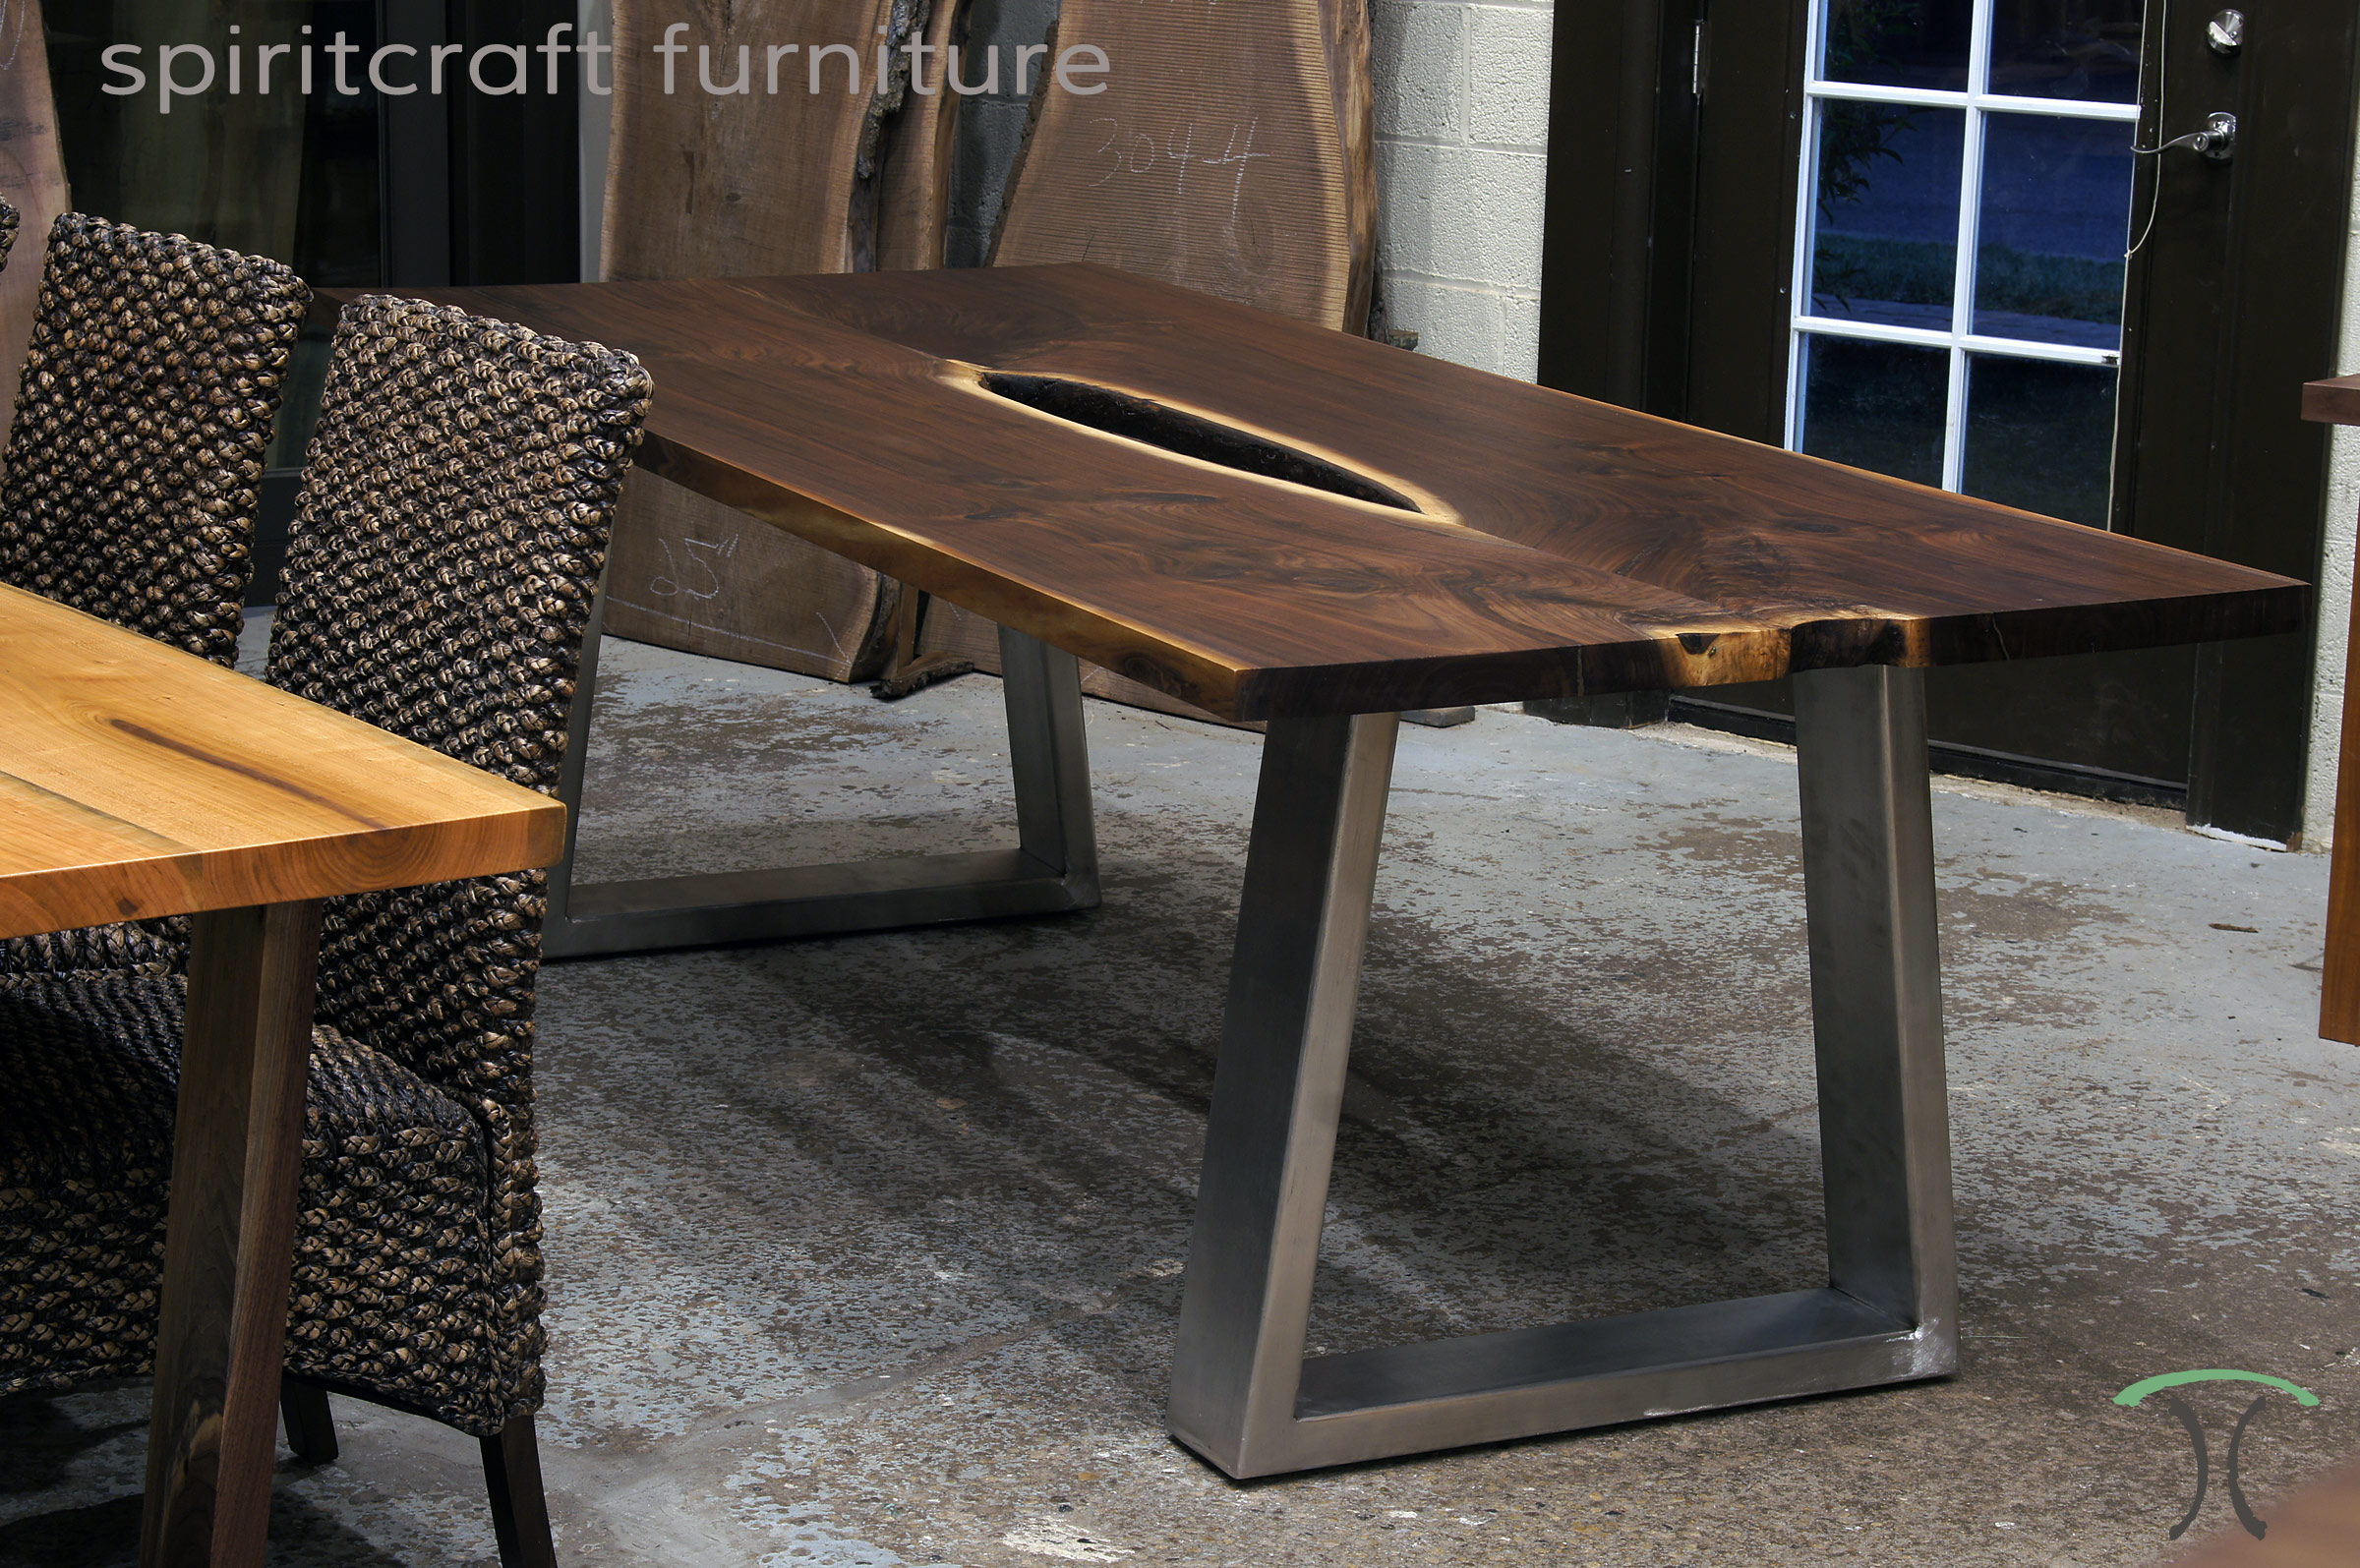 Black Walnut live edge dining conference table with Stainless Steel trapezoid style legs for Chicago area,Long Grove, Illinois client. Available at Spiritcraft Furniture, Dundee, IL